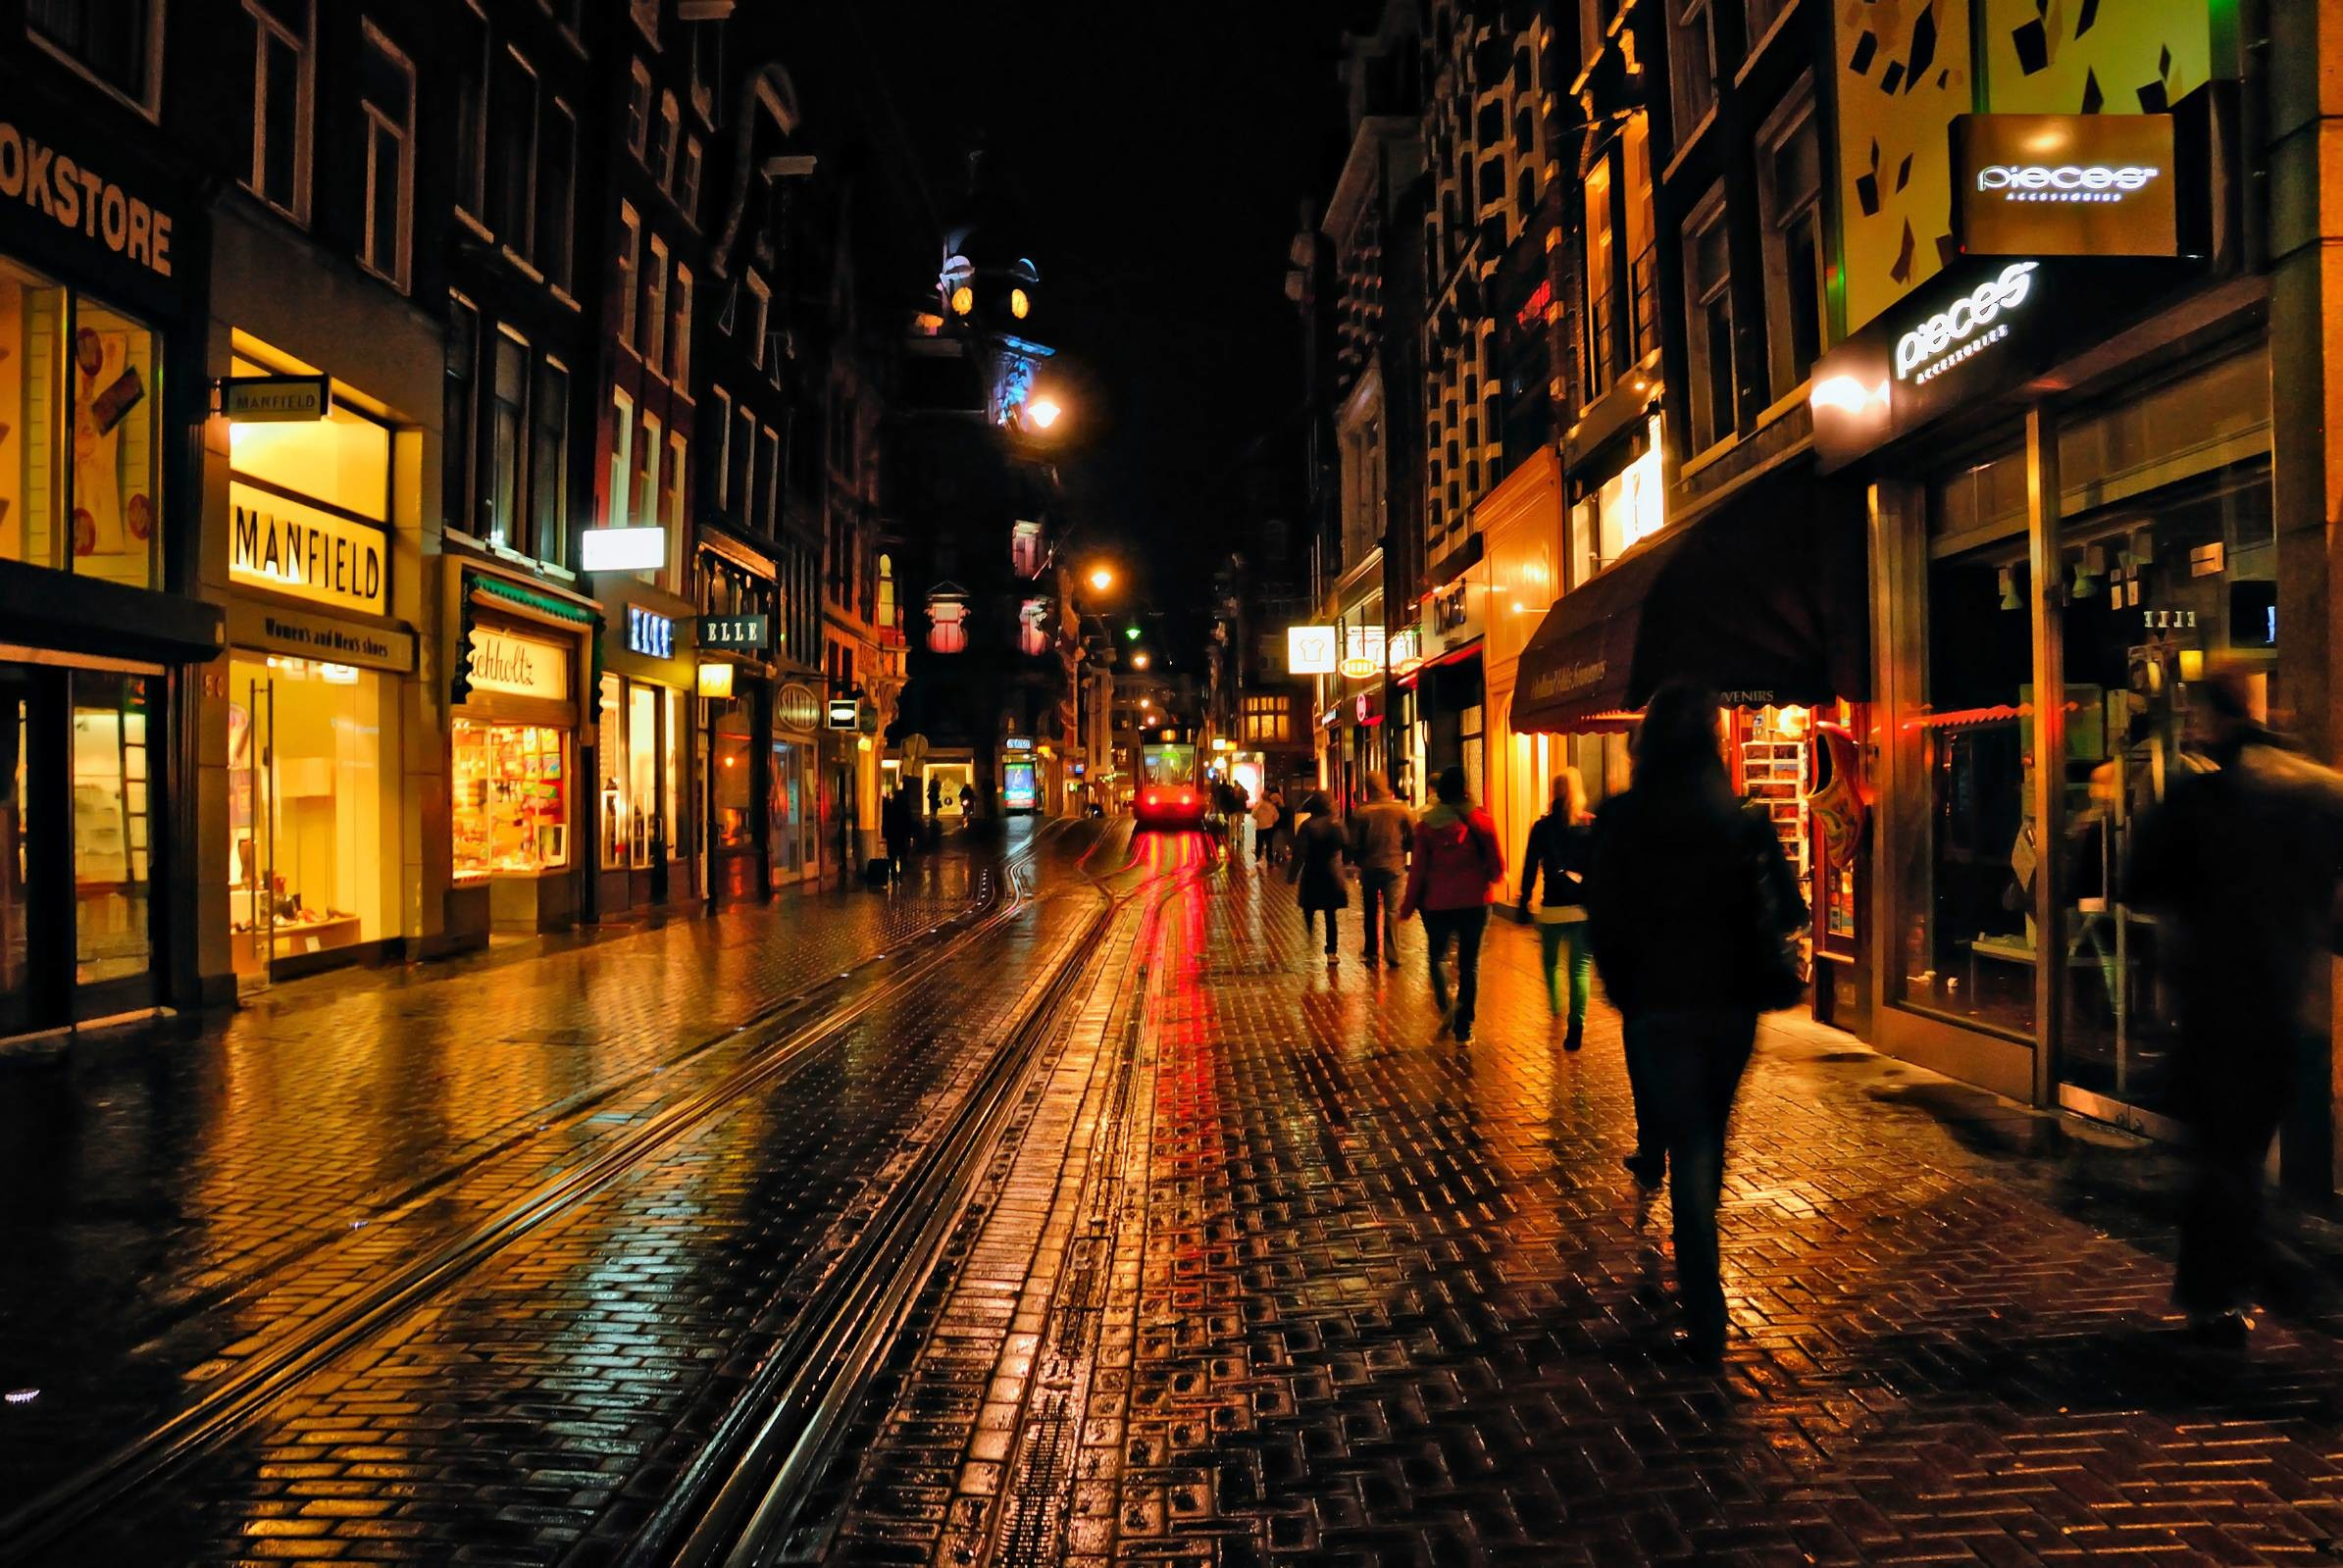 City Street Backgrounds Images & Pictures – Becuo